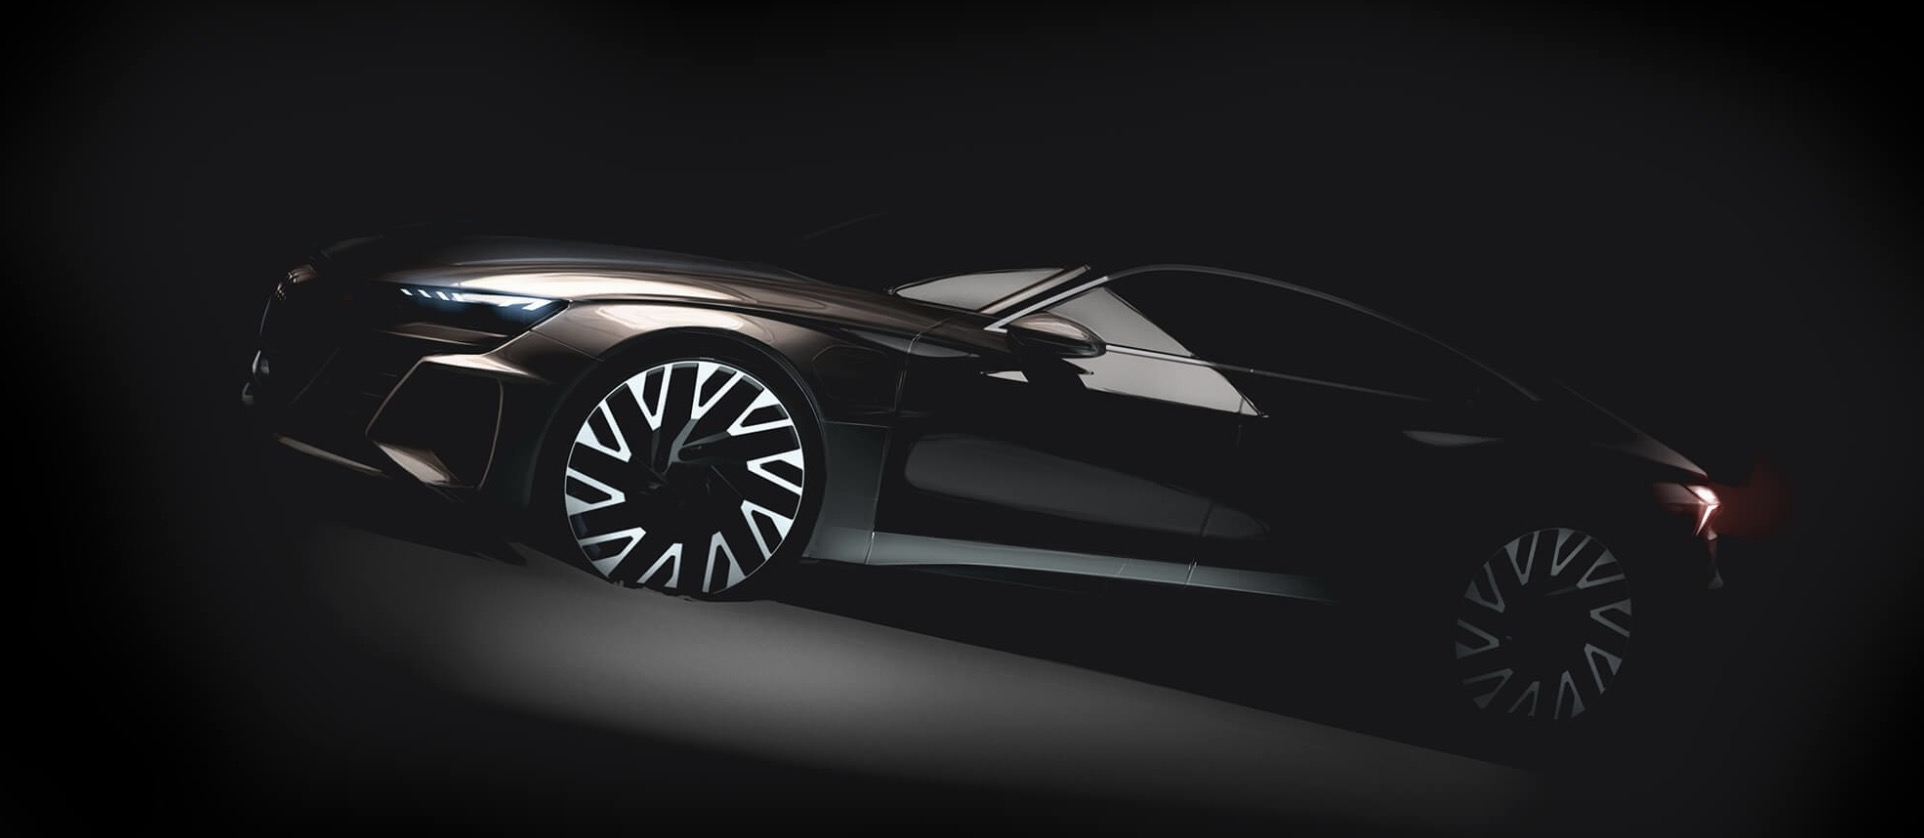 Audi's 2020 electric Sport e-tron GT is going to be based on the Porsche Taycan